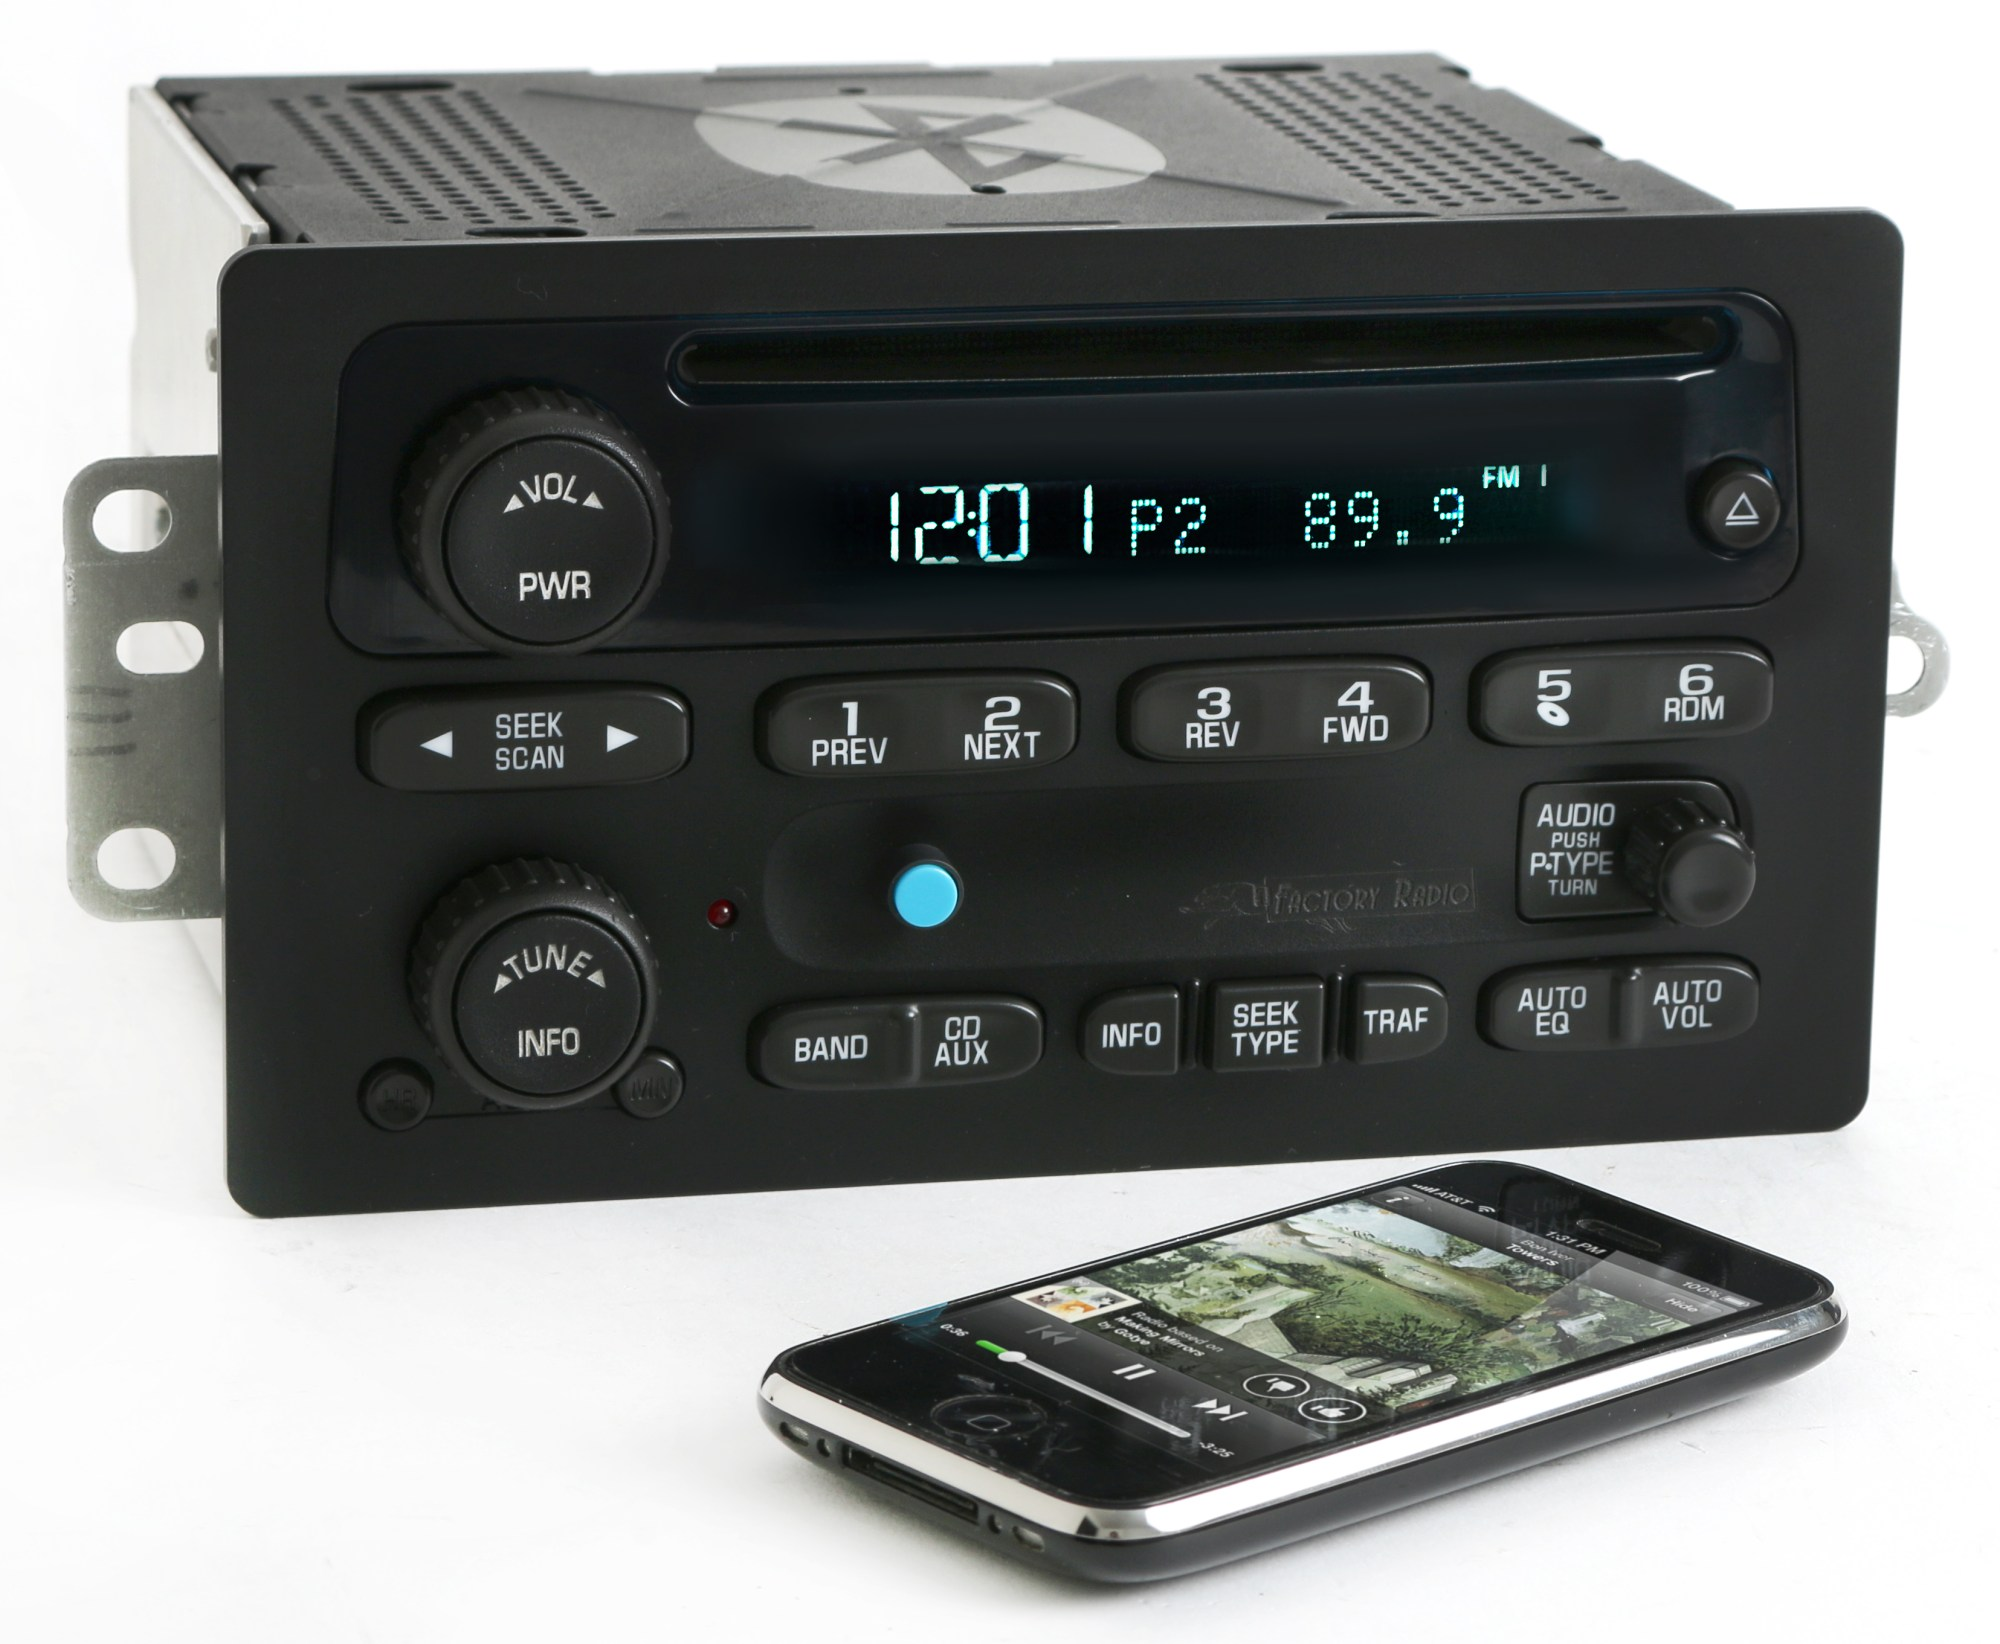 hight resolution of chevy gmc 03 05 truck radio am fm cd player upgraded w bluetooth music 15138488 refurbished walmart com